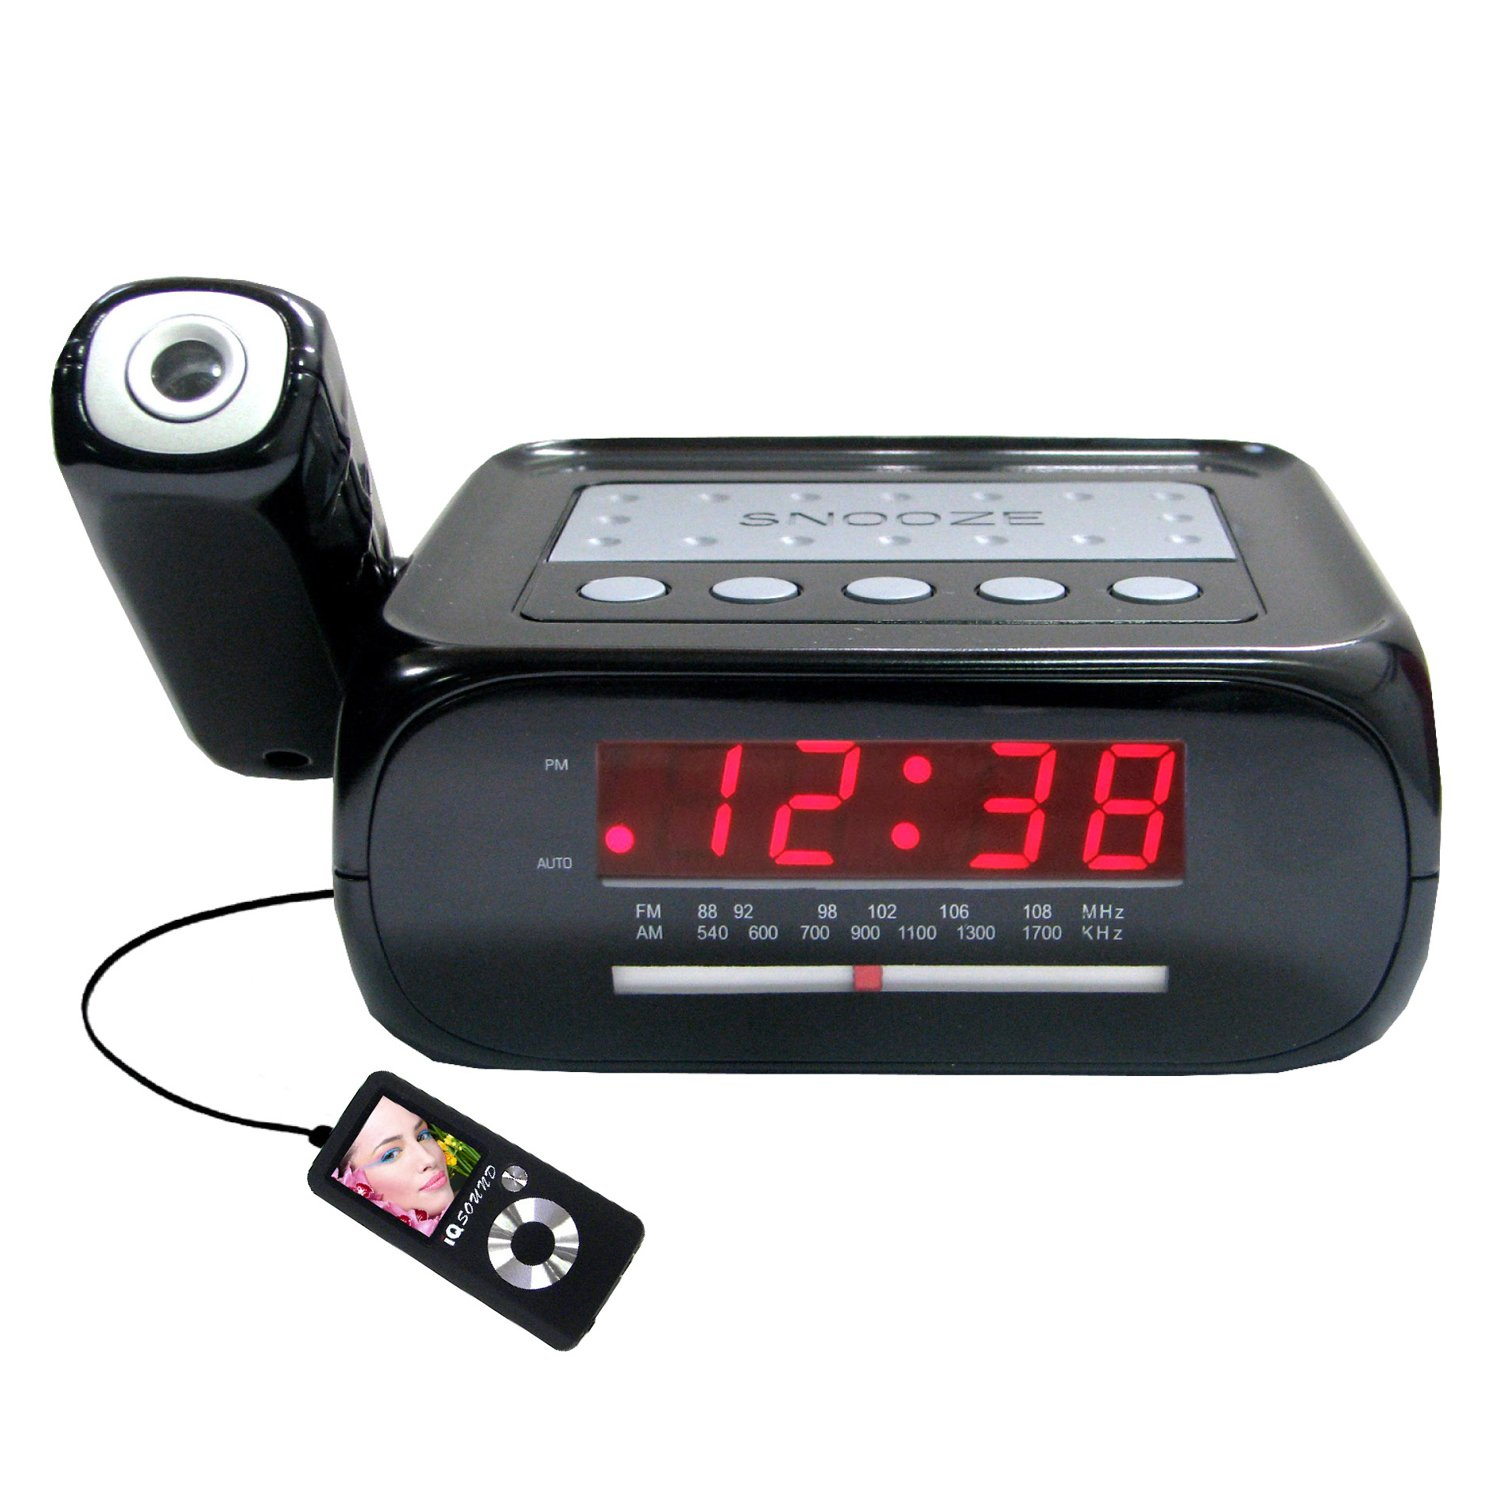 ceiling wall projection projector alarm clock radio ipod mp3 aux music jack new ebay. Black Bedroom Furniture Sets. Home Design Ideas